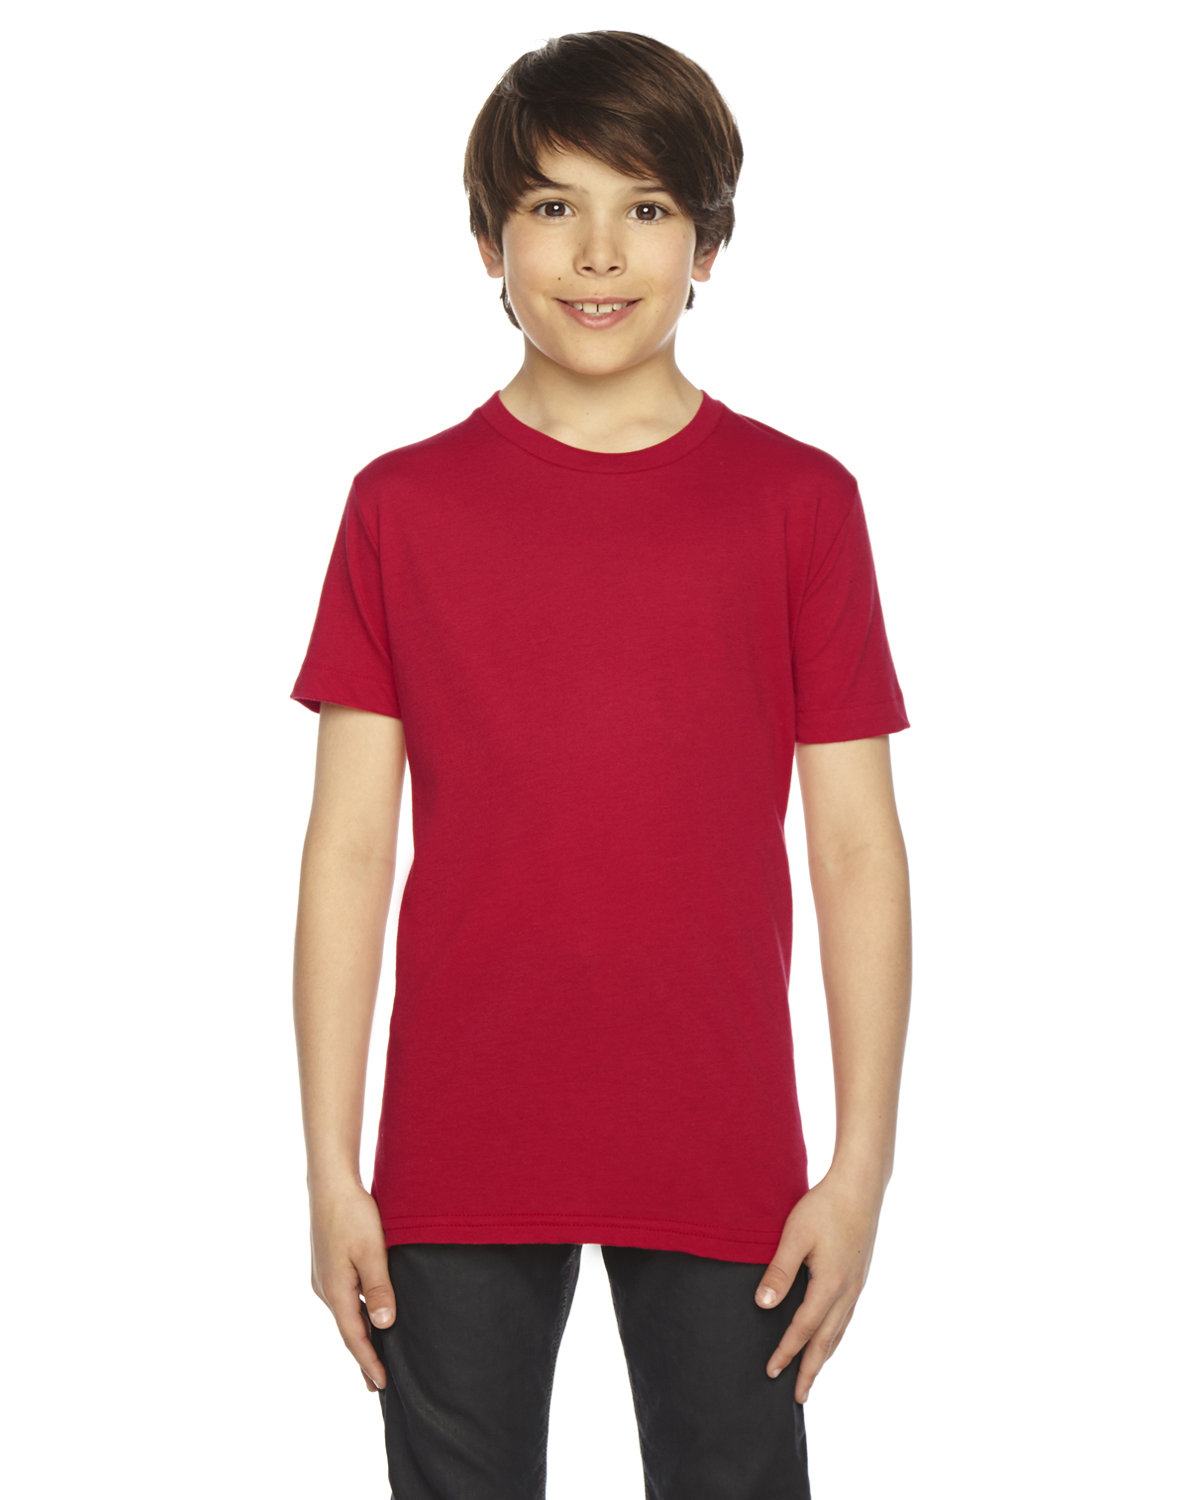 American Apparel Youth Poly-Cotton Short-Sleeve Crewneck RED